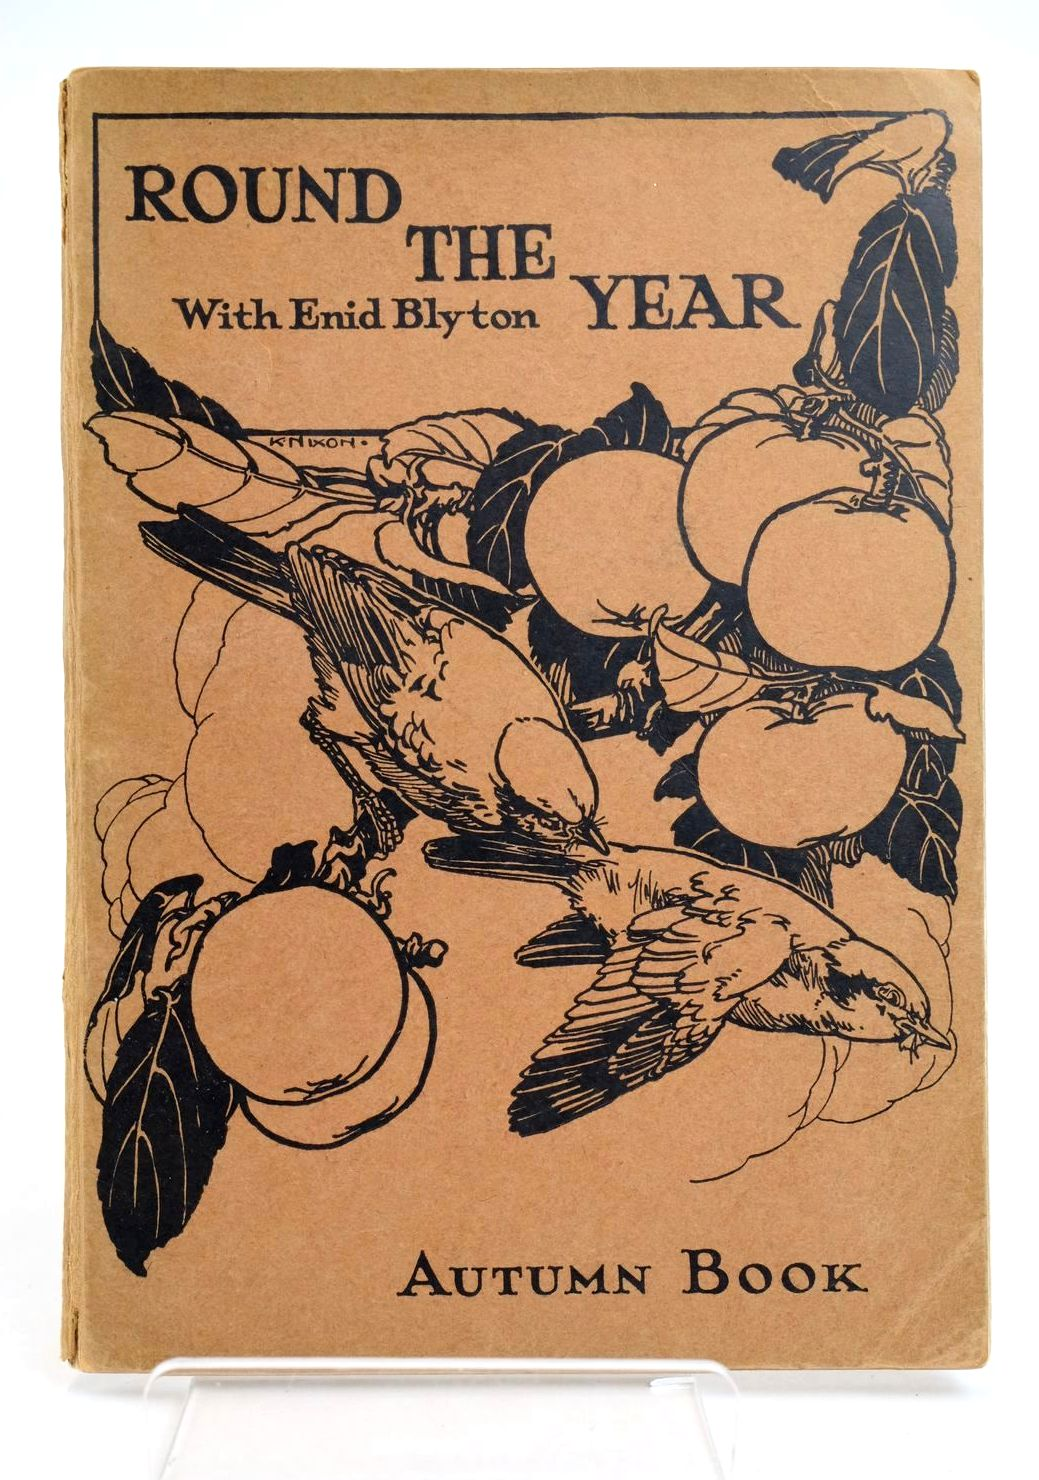 Photo of ROUND THE YEAR WITH ENID BLYTON - AUTUMN BOOK- Stock Number: 1318797